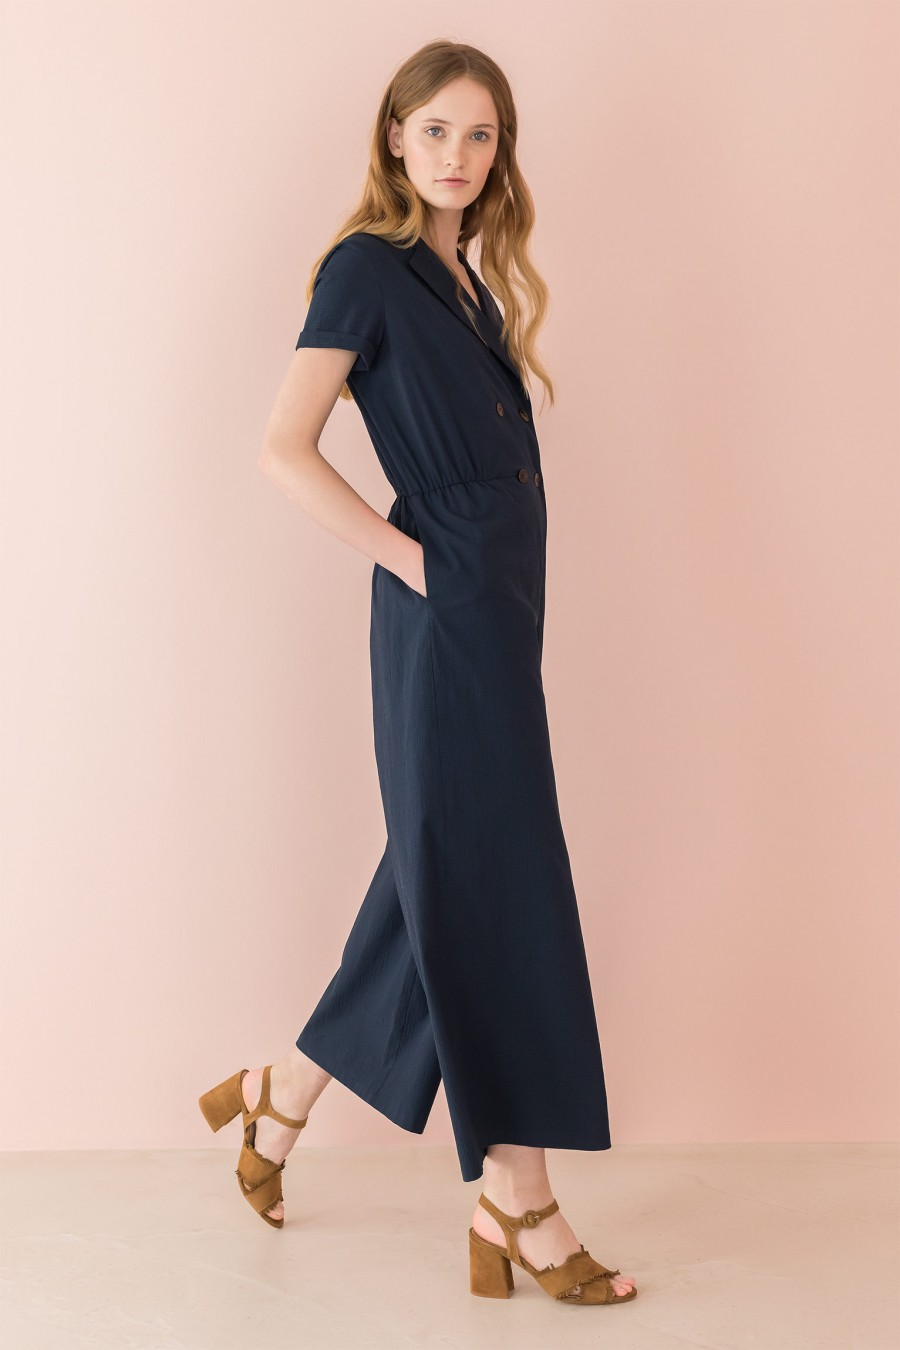 overalls with short sleeves and lapels